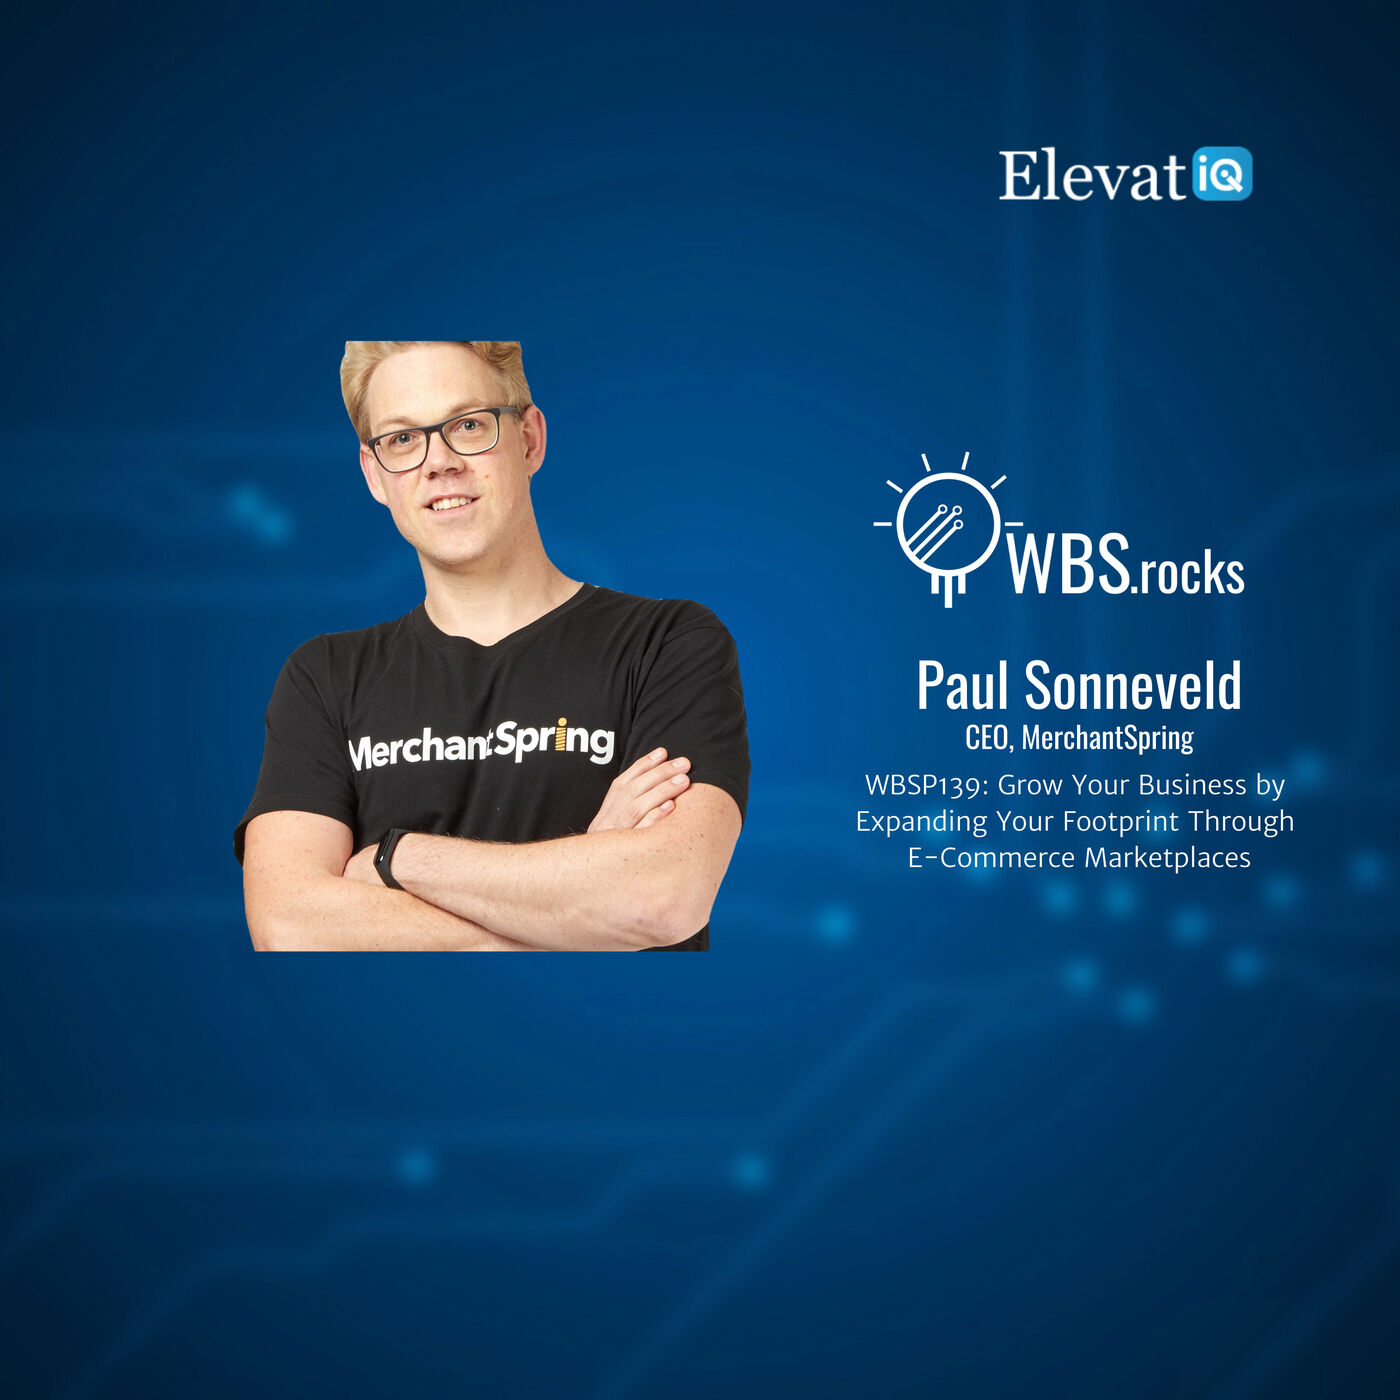 WBSP139: Grow Your Business by Expanding Your Footprint Through E-Commerce Marketplaces w/ Paul Sonneveld